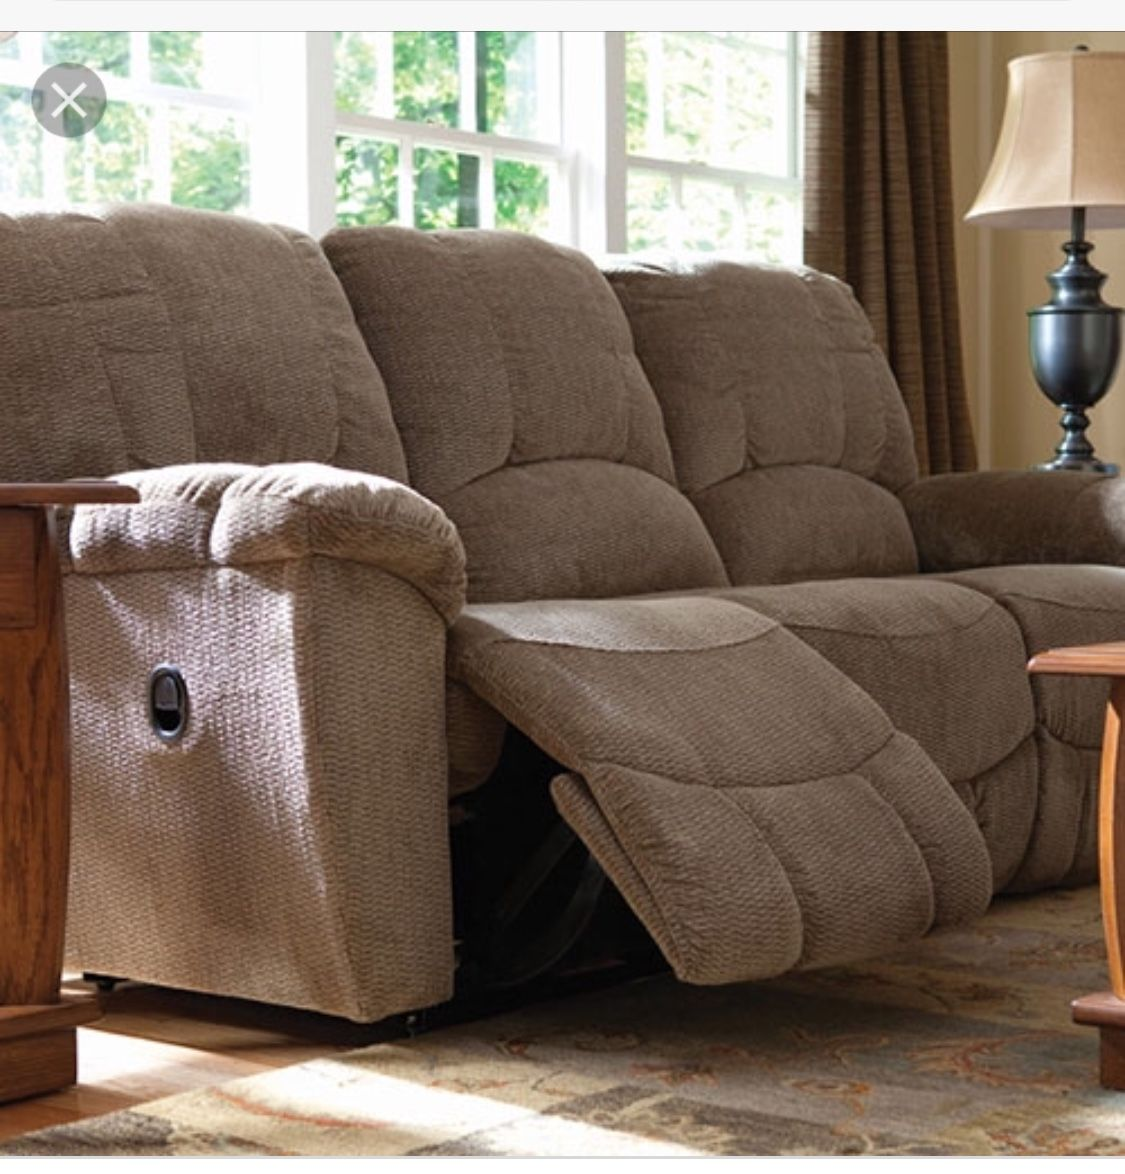 43++ Lazy boy sectional cost ideas